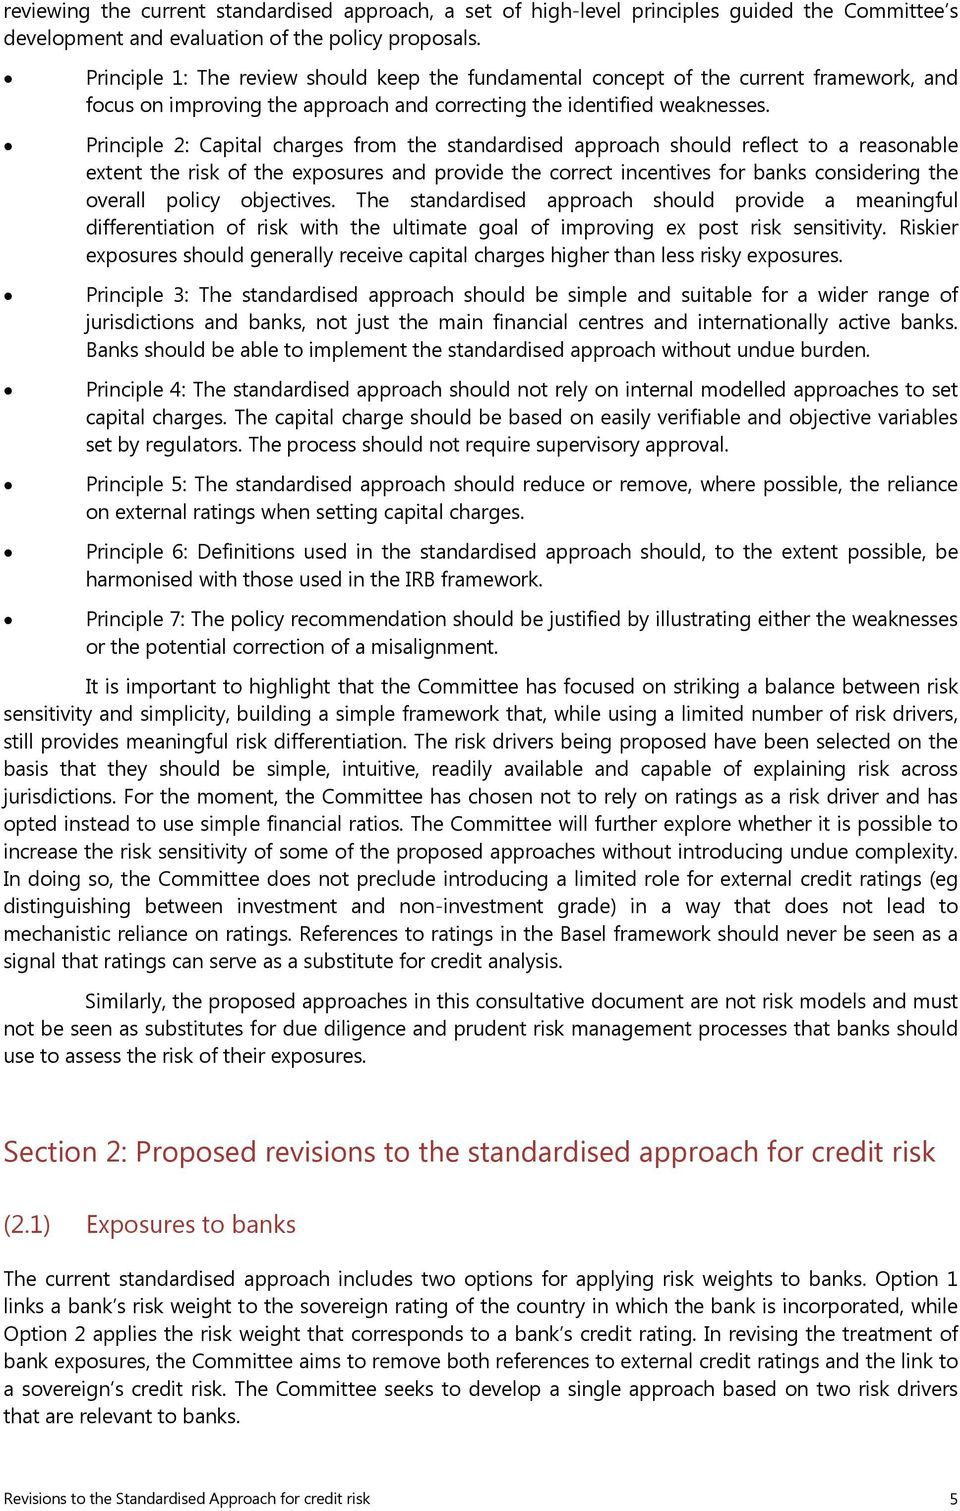 Principle 2: Capital charges from the standardised approach should reflect to a reasonable extent the risk of the exposures and provide the correct incentives for banks considering the overall policy